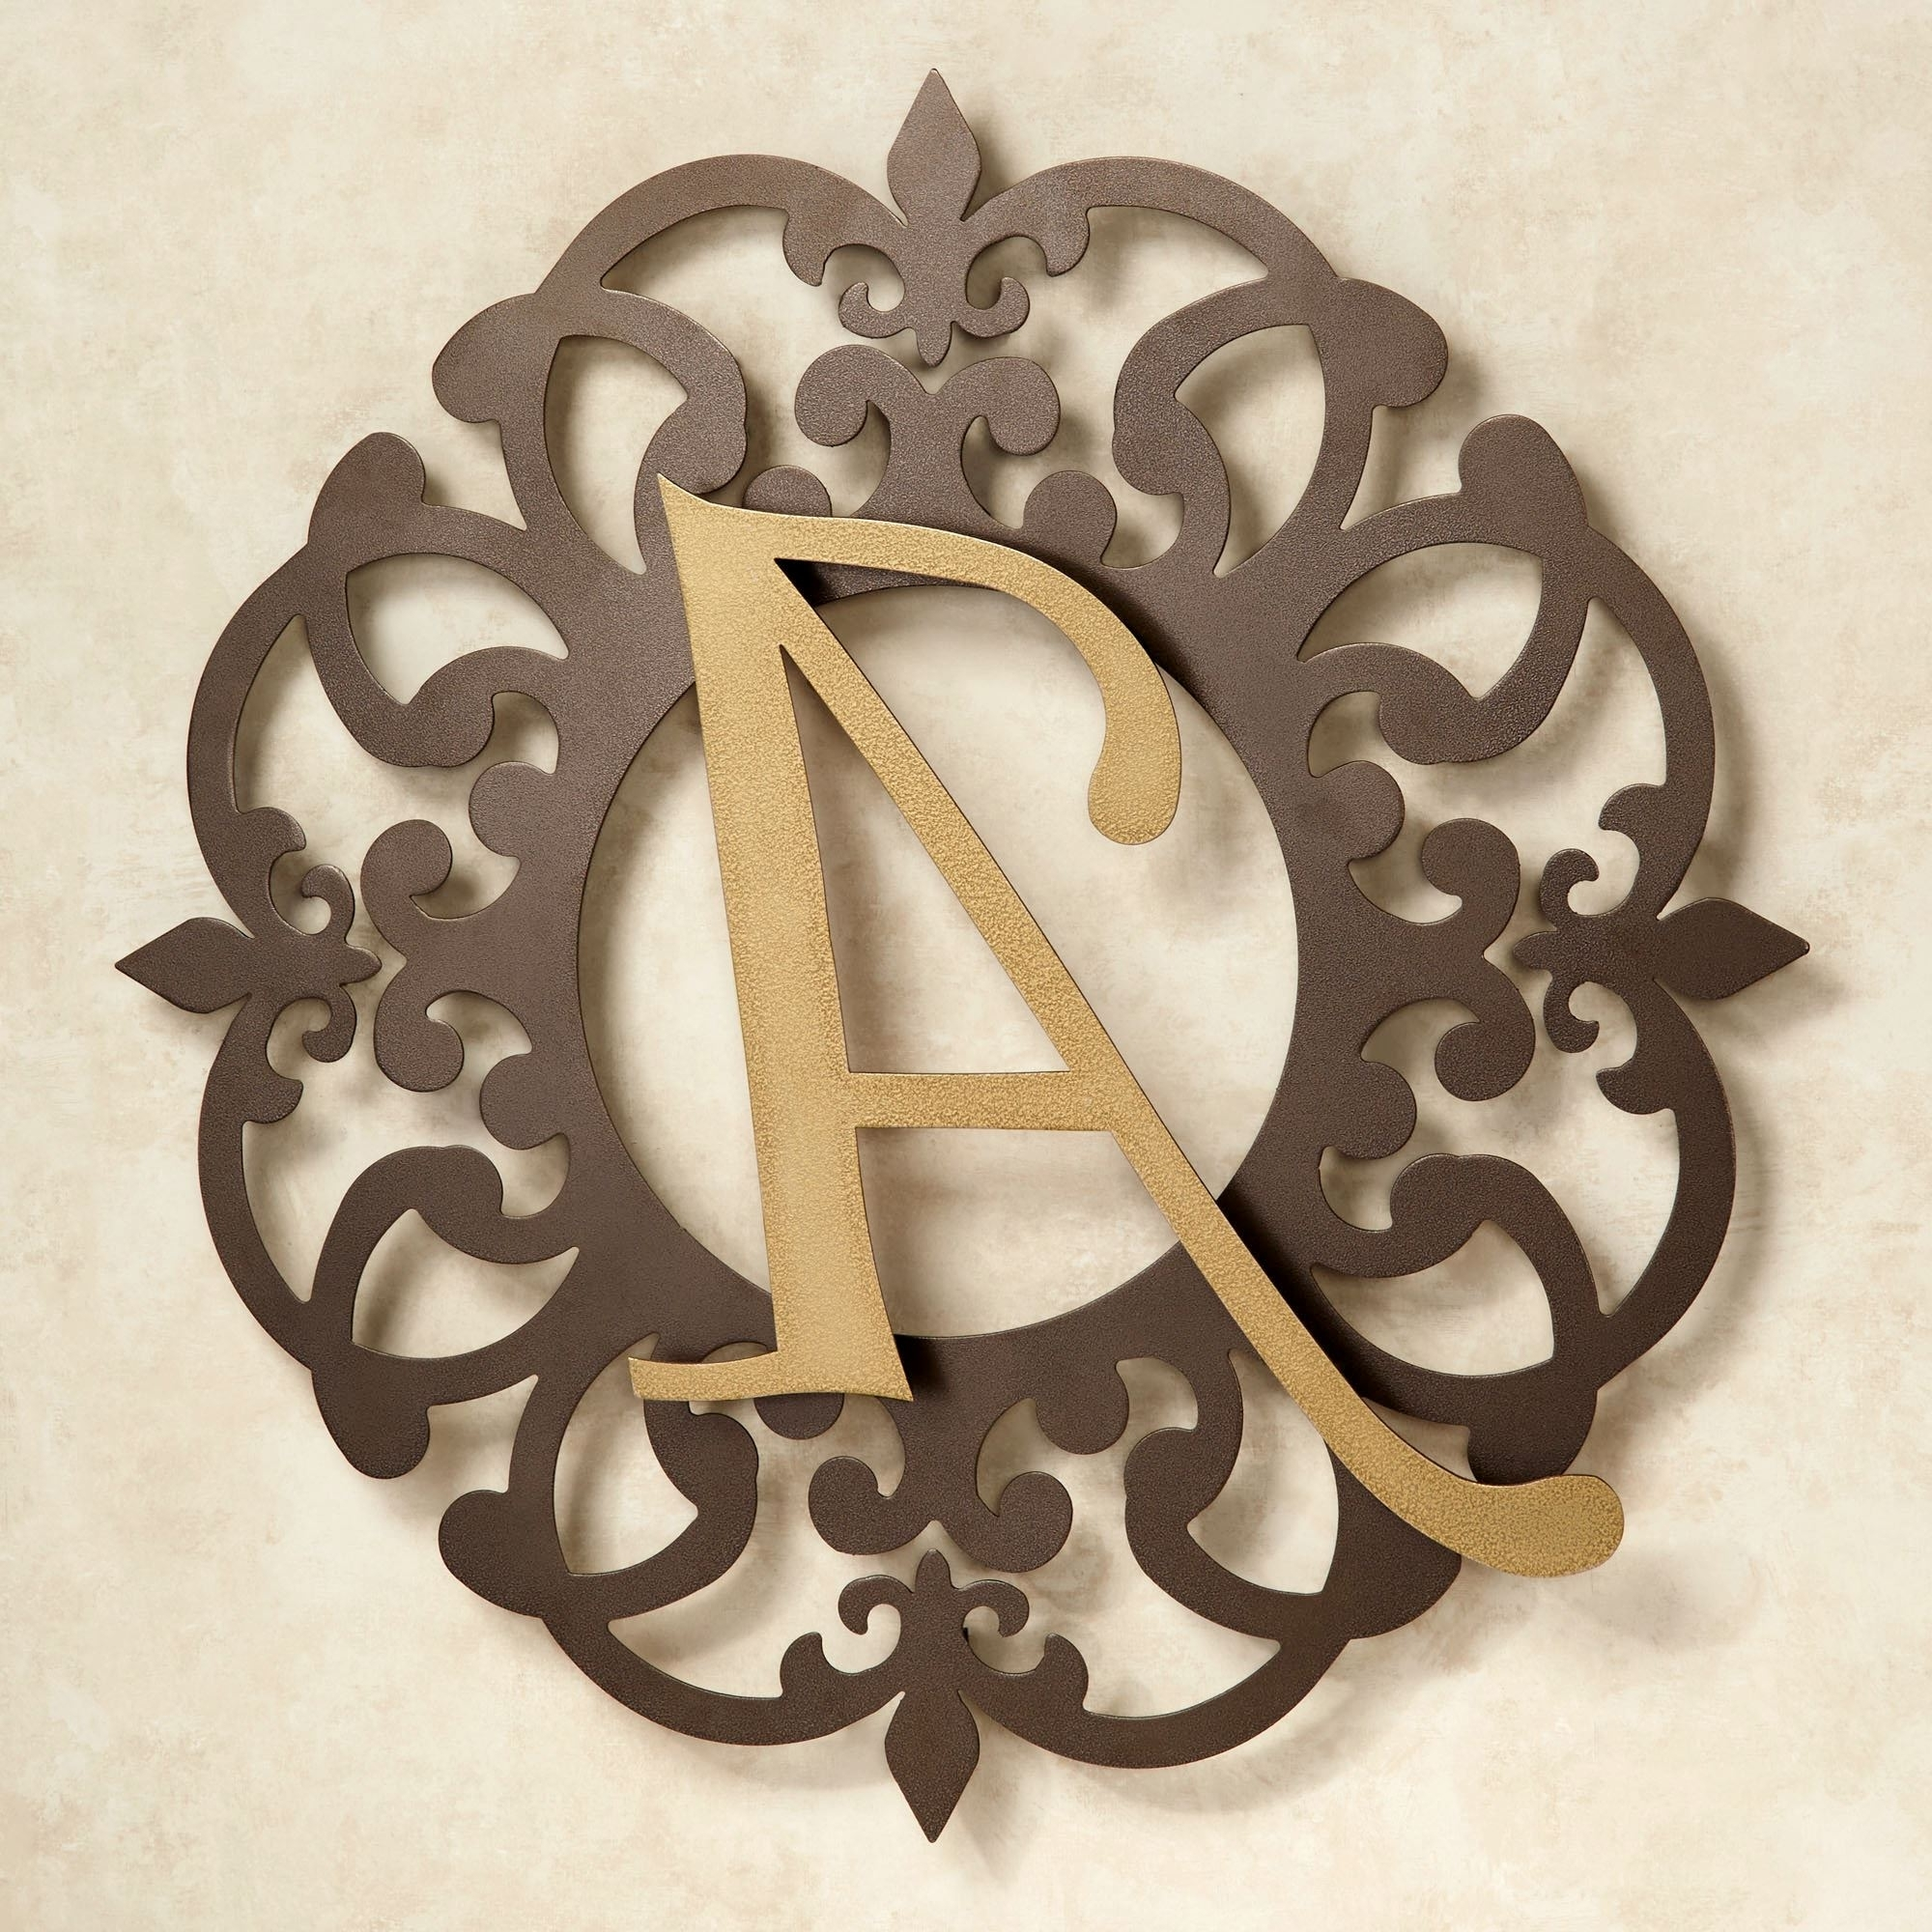 Heritage Monogram Metal Wall Art Signjasonw Studios Throughout 2018 Monogram Metal Wall Art (View 6 of 15)